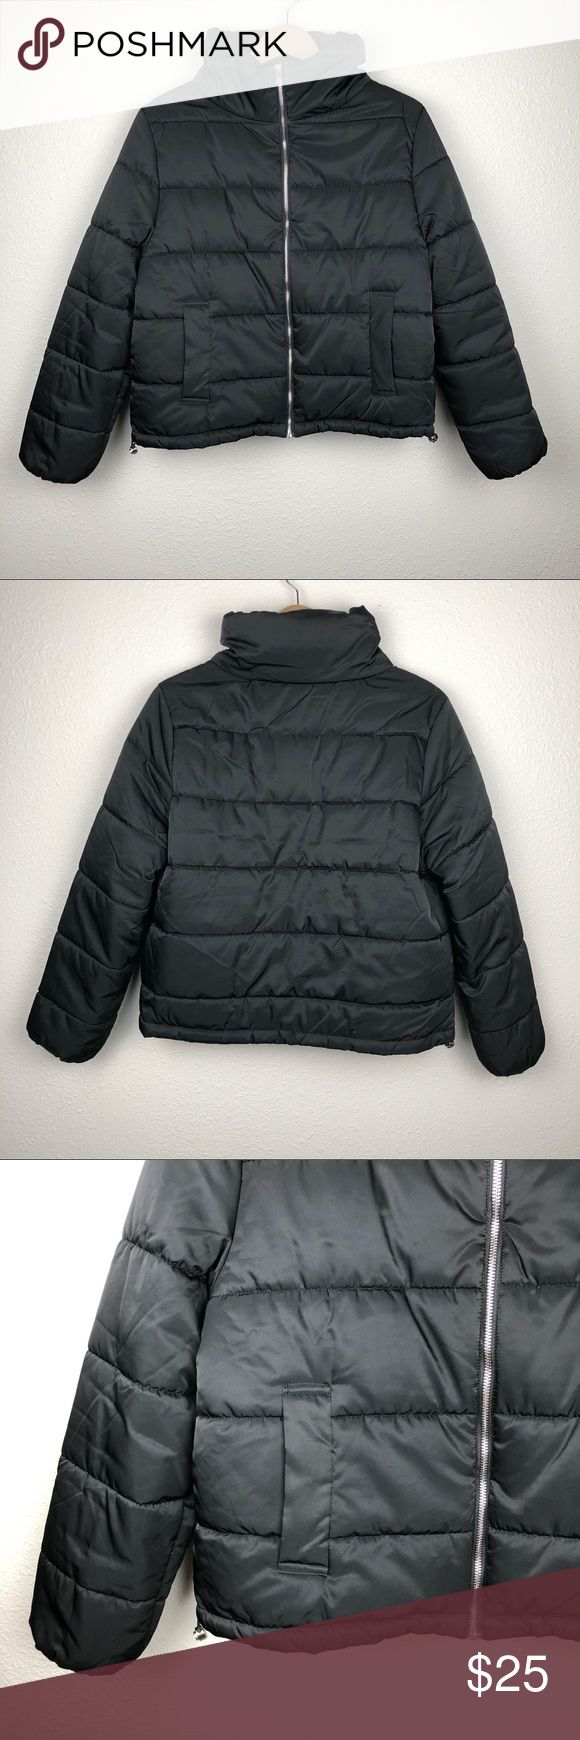 Black Puffer Jacket In Great Condition Purchased From An Online Boutique Gently Worn Ambiance Jackets Coats Puffers Black Puffer Jacket Black Puffer Jackets [ 1740 x 580 Pixel ]